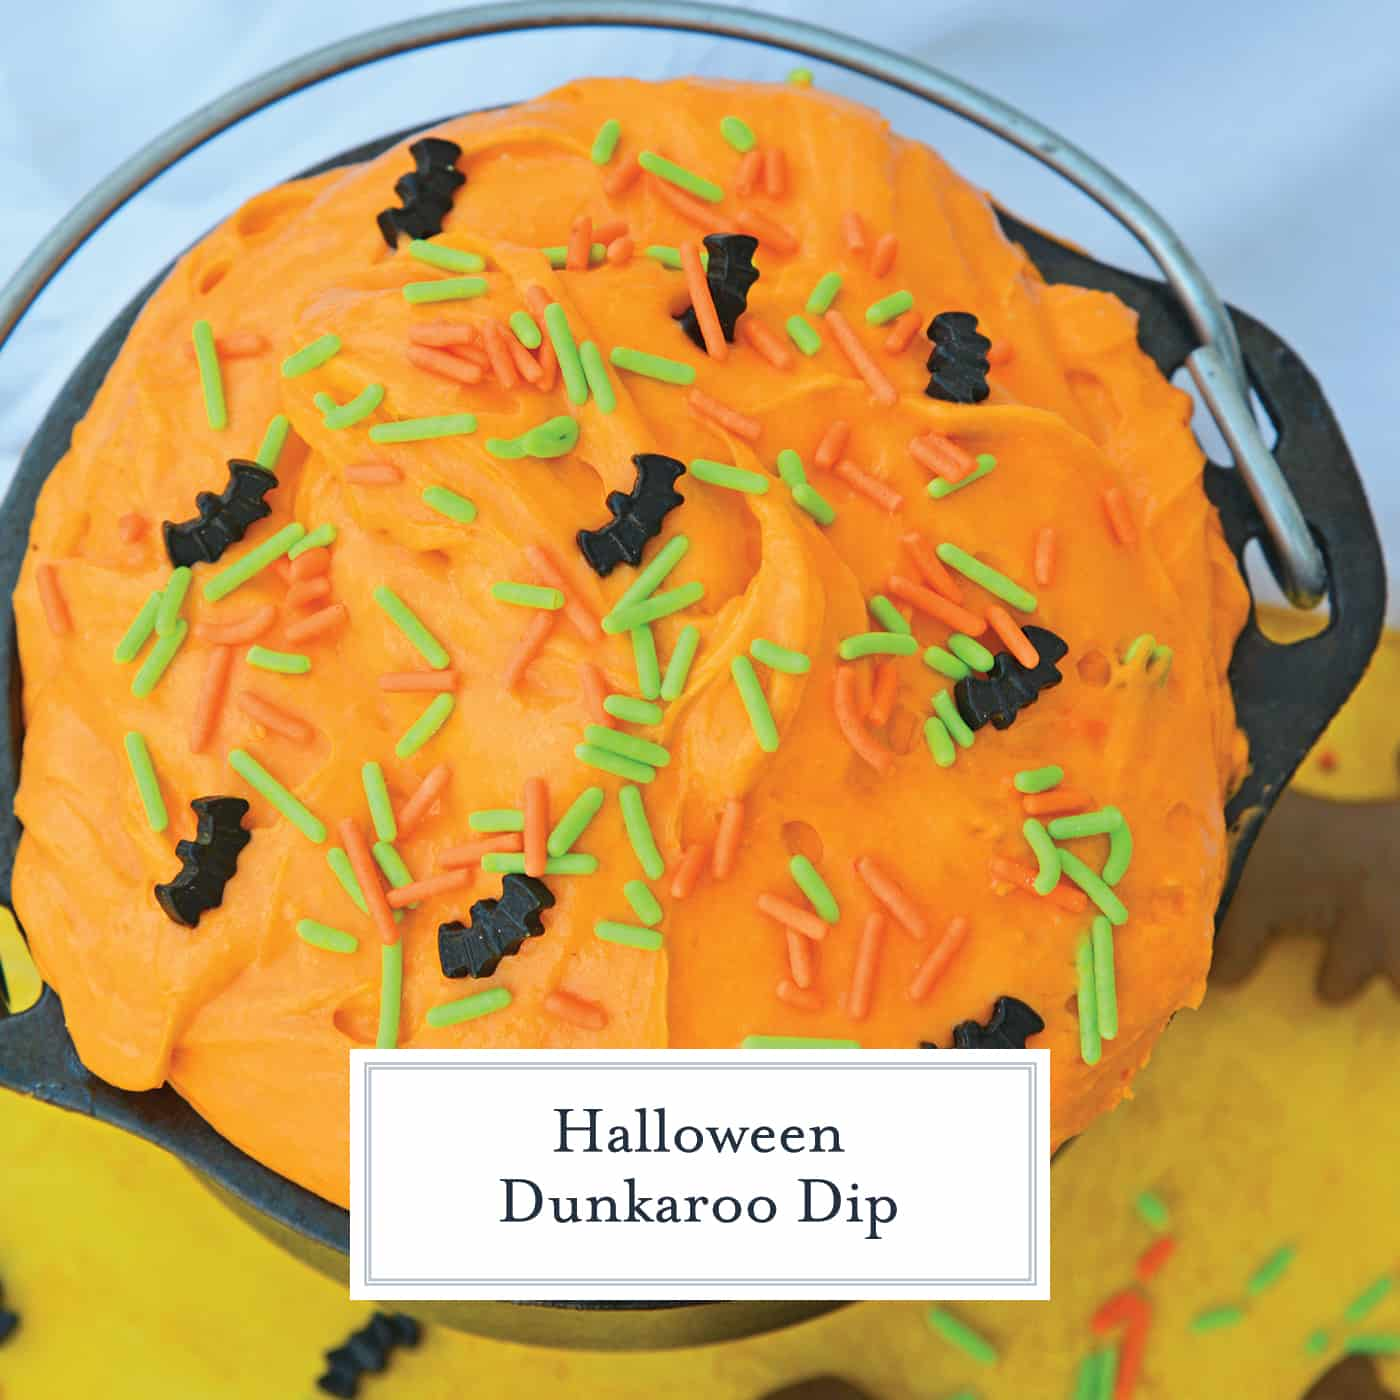 Halloween Dunkaroo Dip is a quick and easy cake batter dip that will become one of your go-to recipes for Halloween parties. #dunkaroodip #cakebatterdip www.savoryexperiments.com